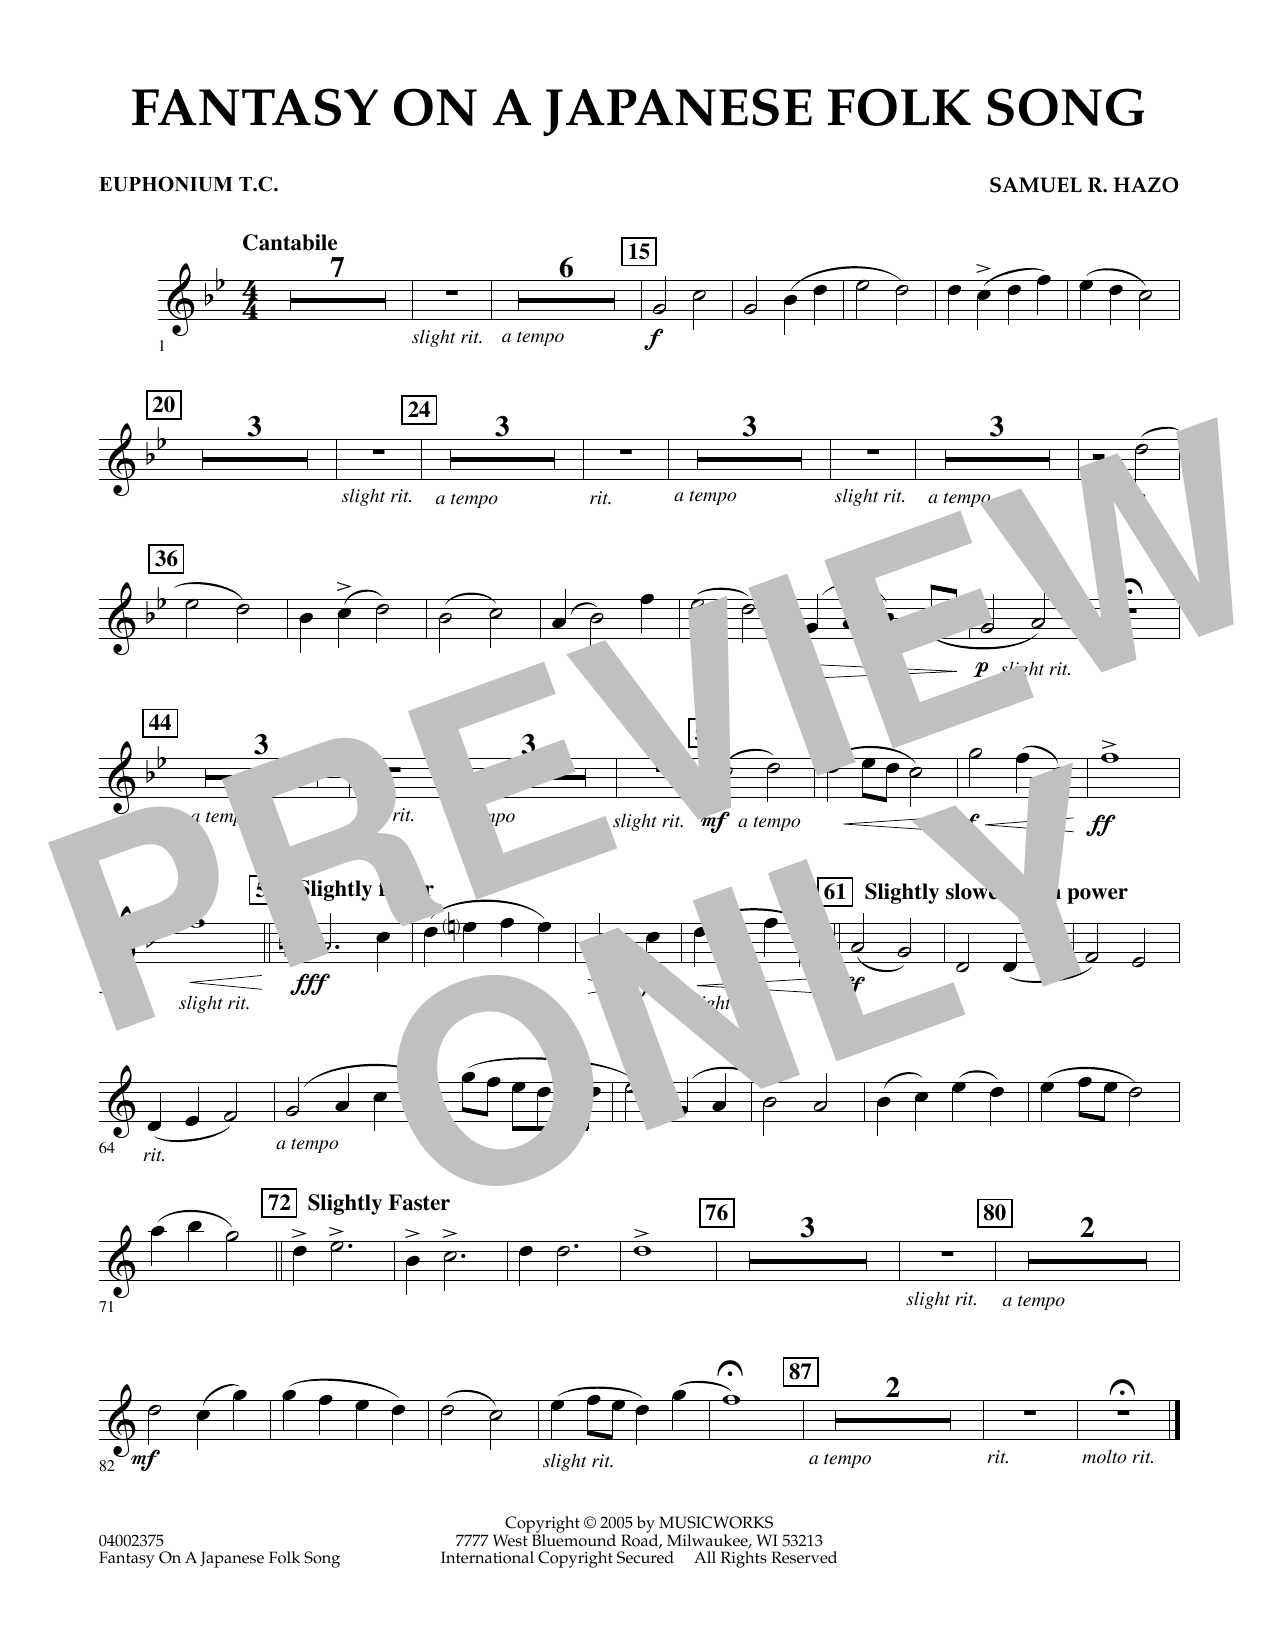 Samuel R. Hazo Fantasy On A Japanese Folk Song - Euphonium in Treble Clef sheet music notes and chords. Download Printable PDF.